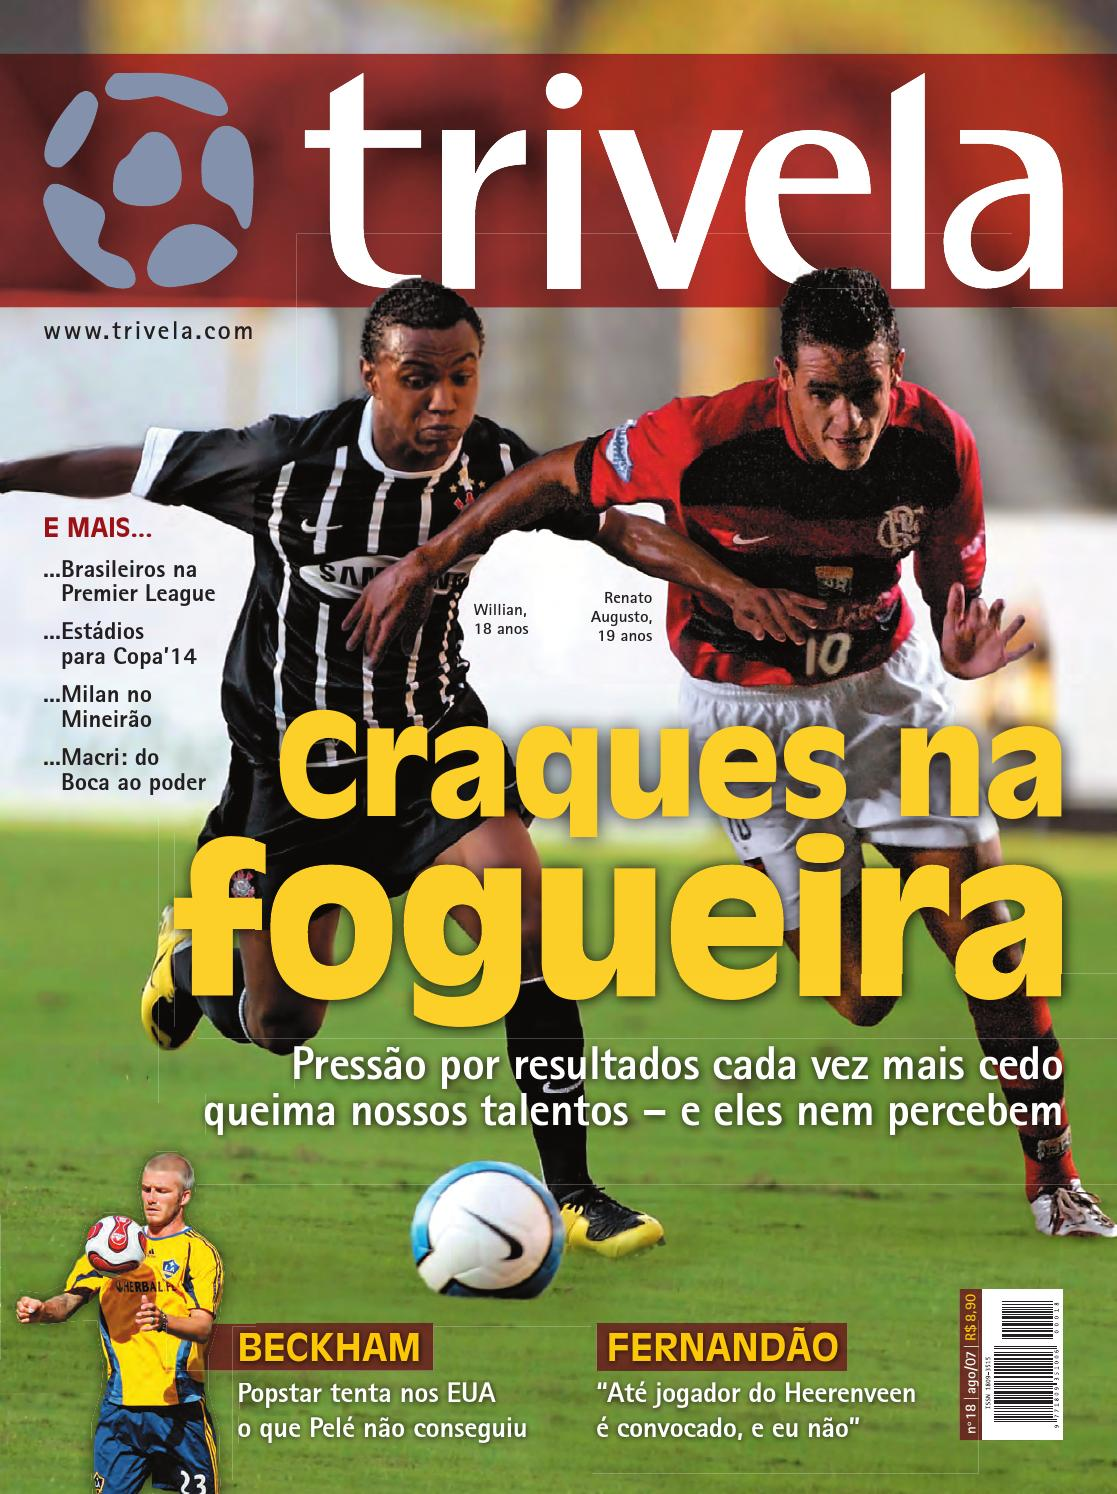 Trivela 18 (ago 07) by °F451 - issuu 57f30e0387feb